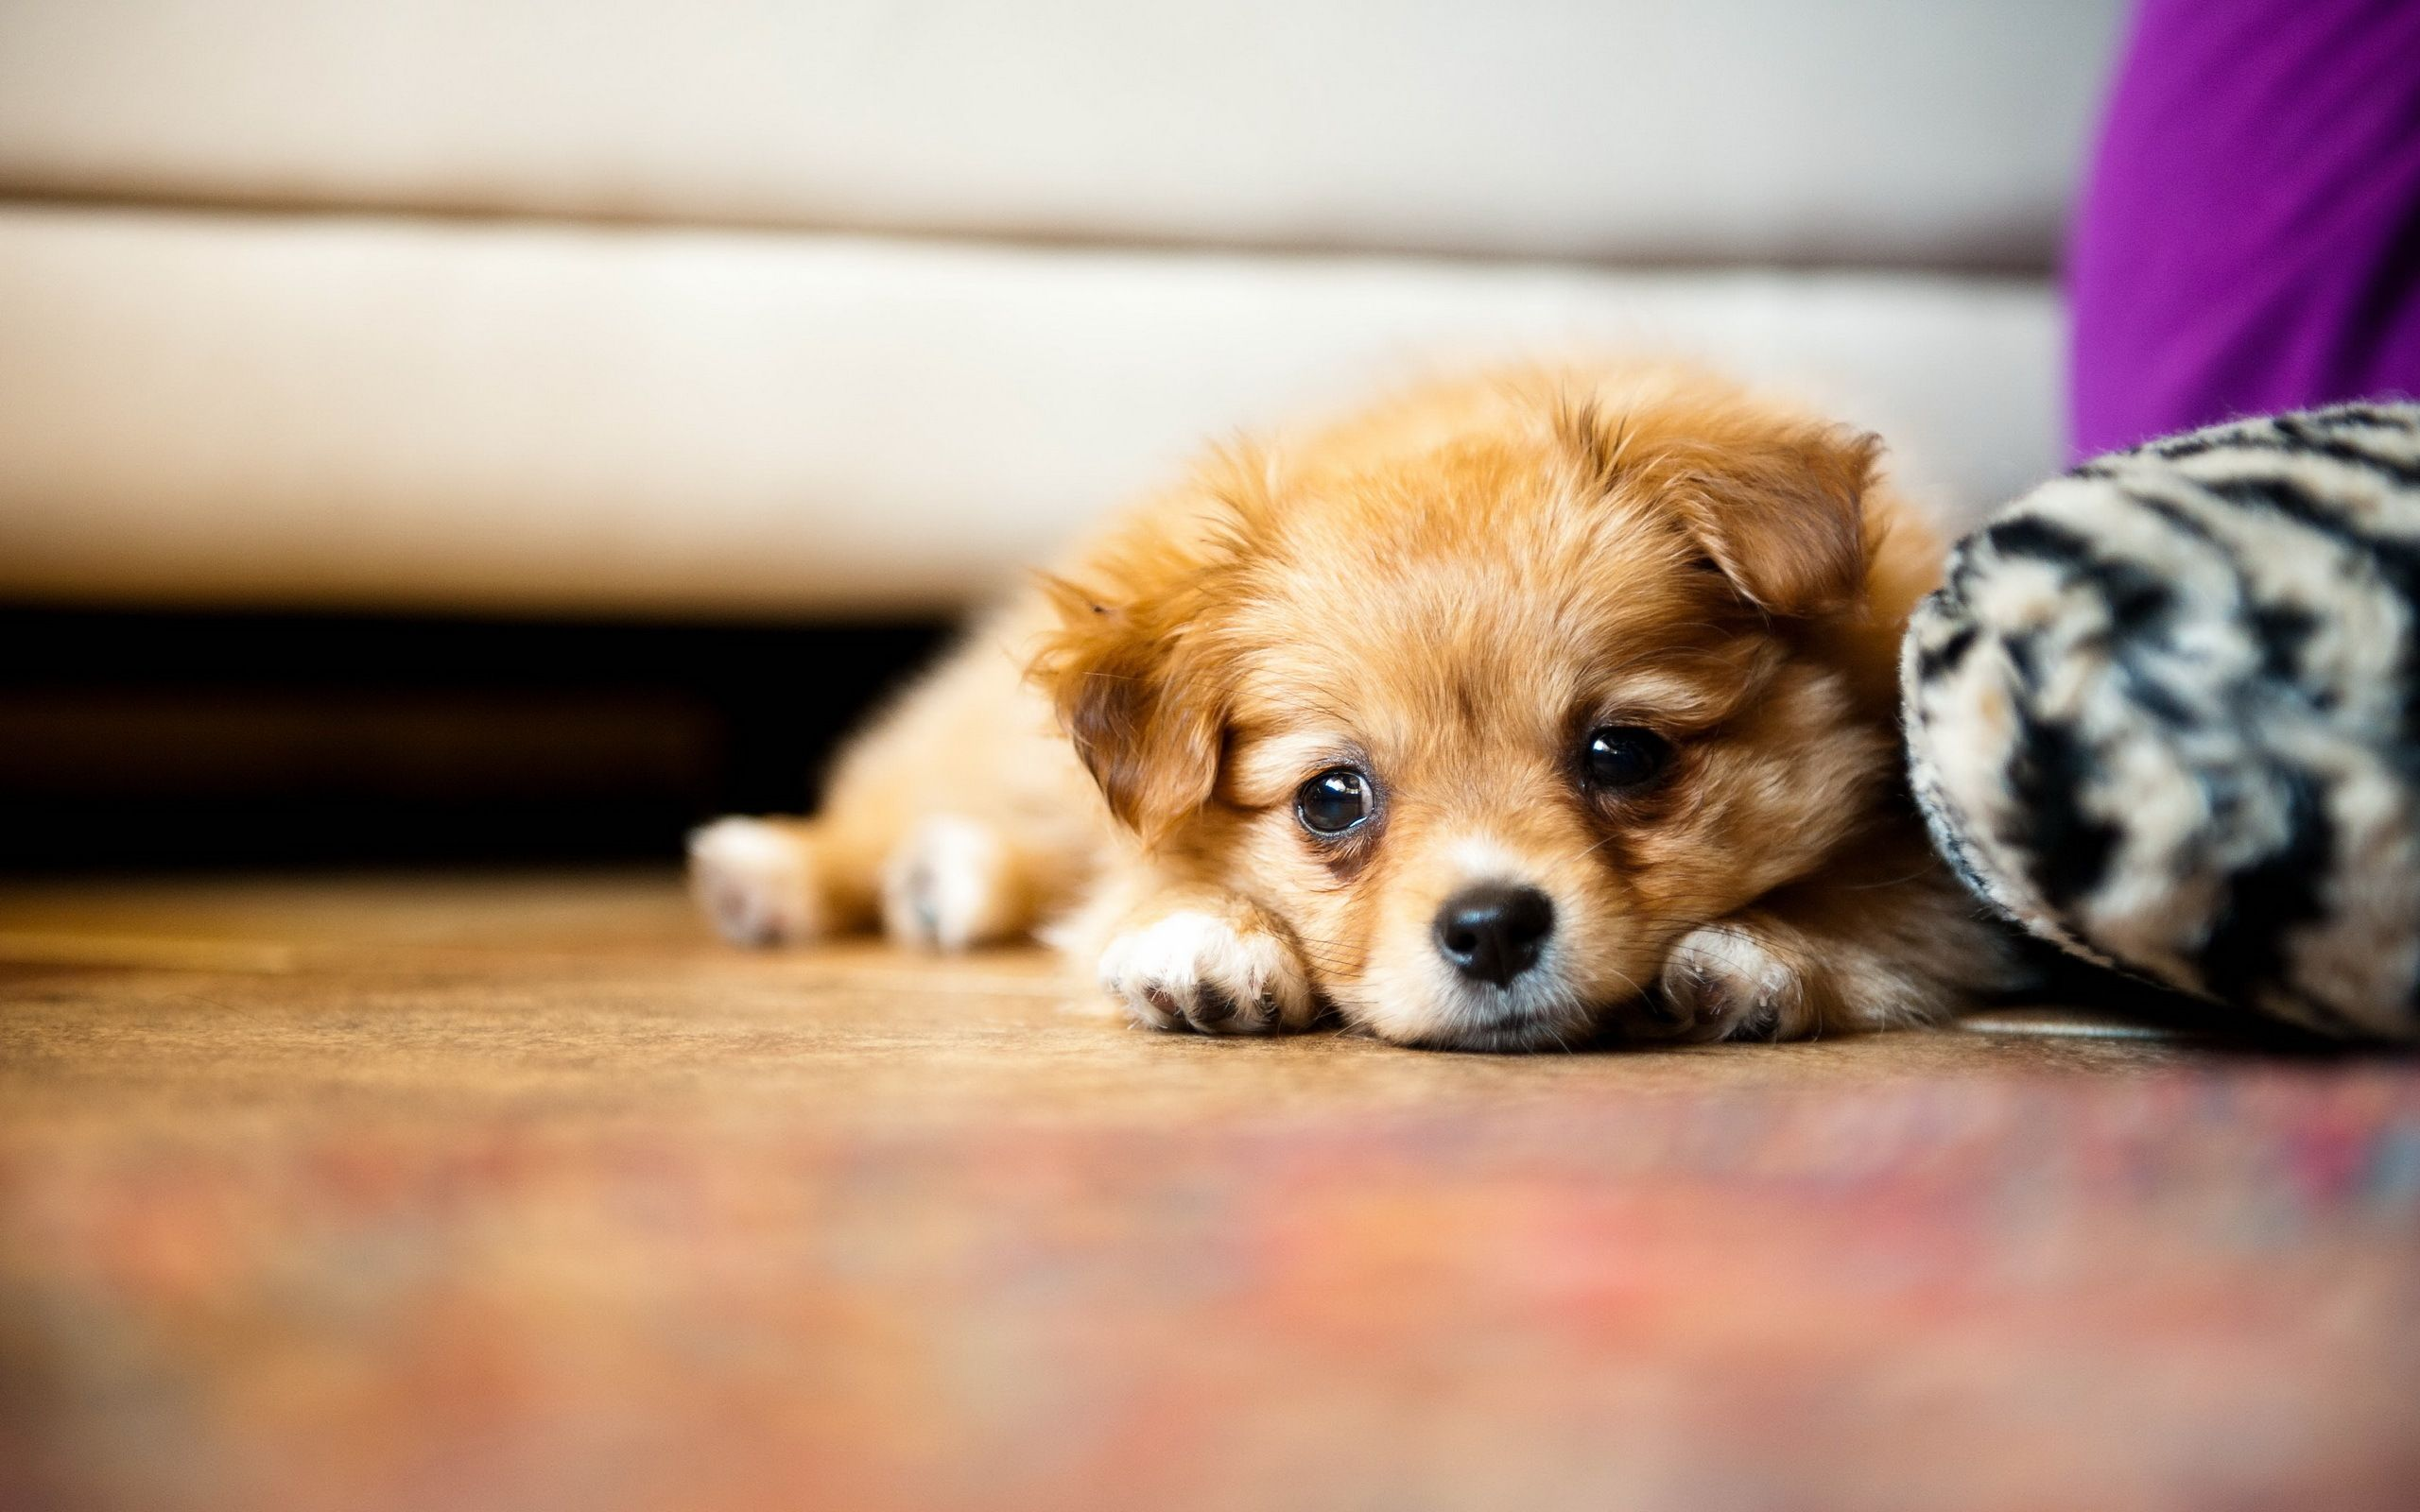 Cute little Puppy Wallpapers | Pictures | Cute puppy wallpaper, Cute puppy  pictures, Puppy pictures